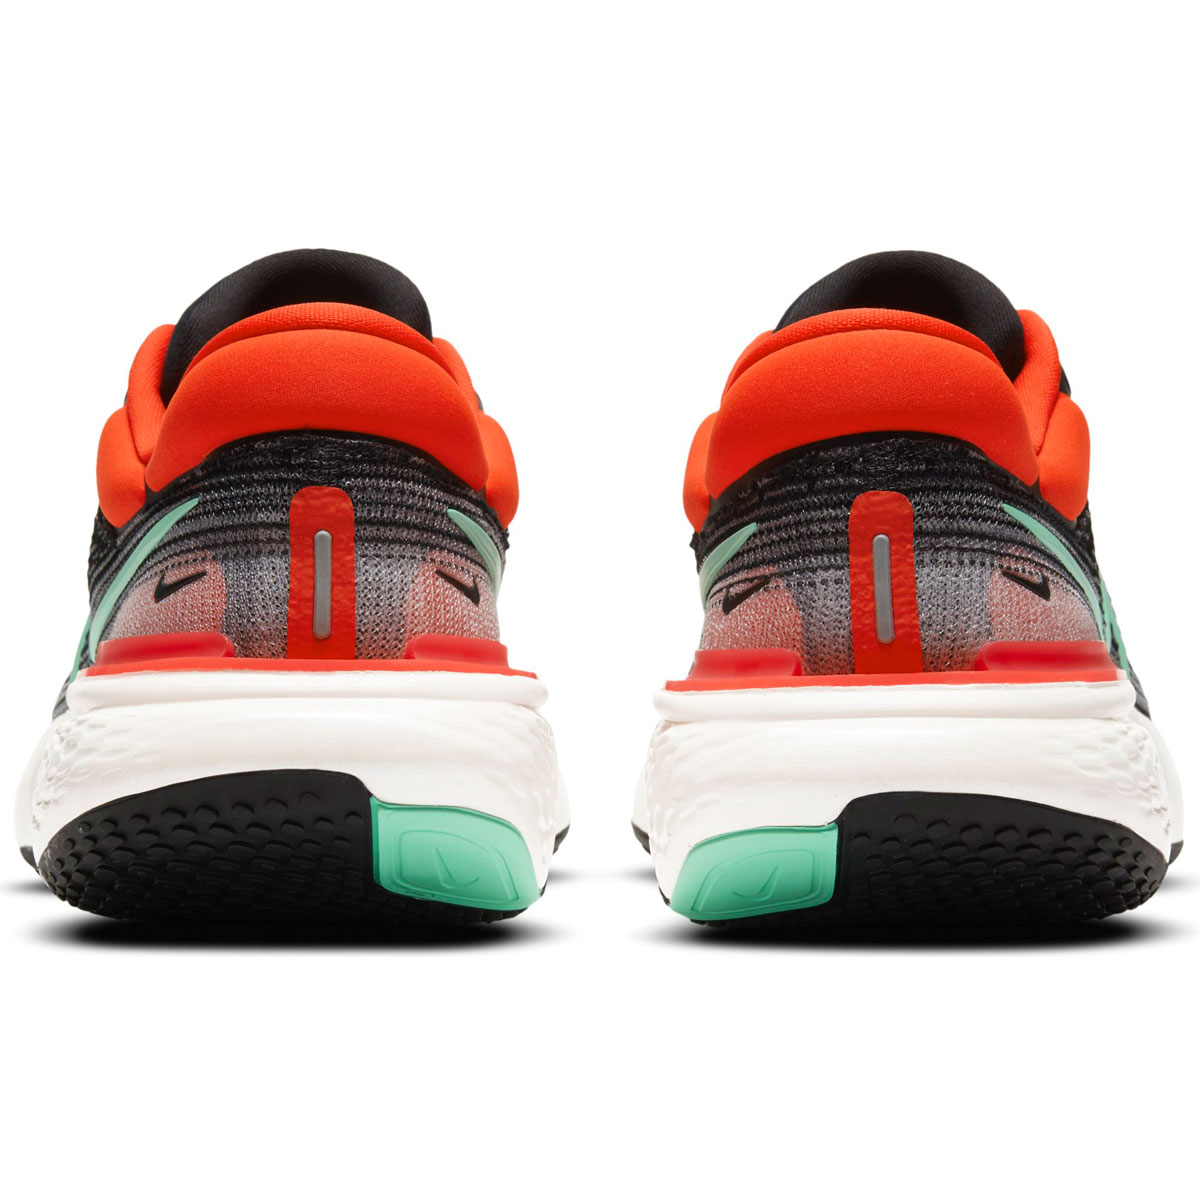 Men's Nike Zoomx Invincible Run FlyKnit Running Shoe - Color: Black/Green Glow/Chile Red - Size: 6 - Width: Regular, Black/Green Glow/Chile Red, large, image 4